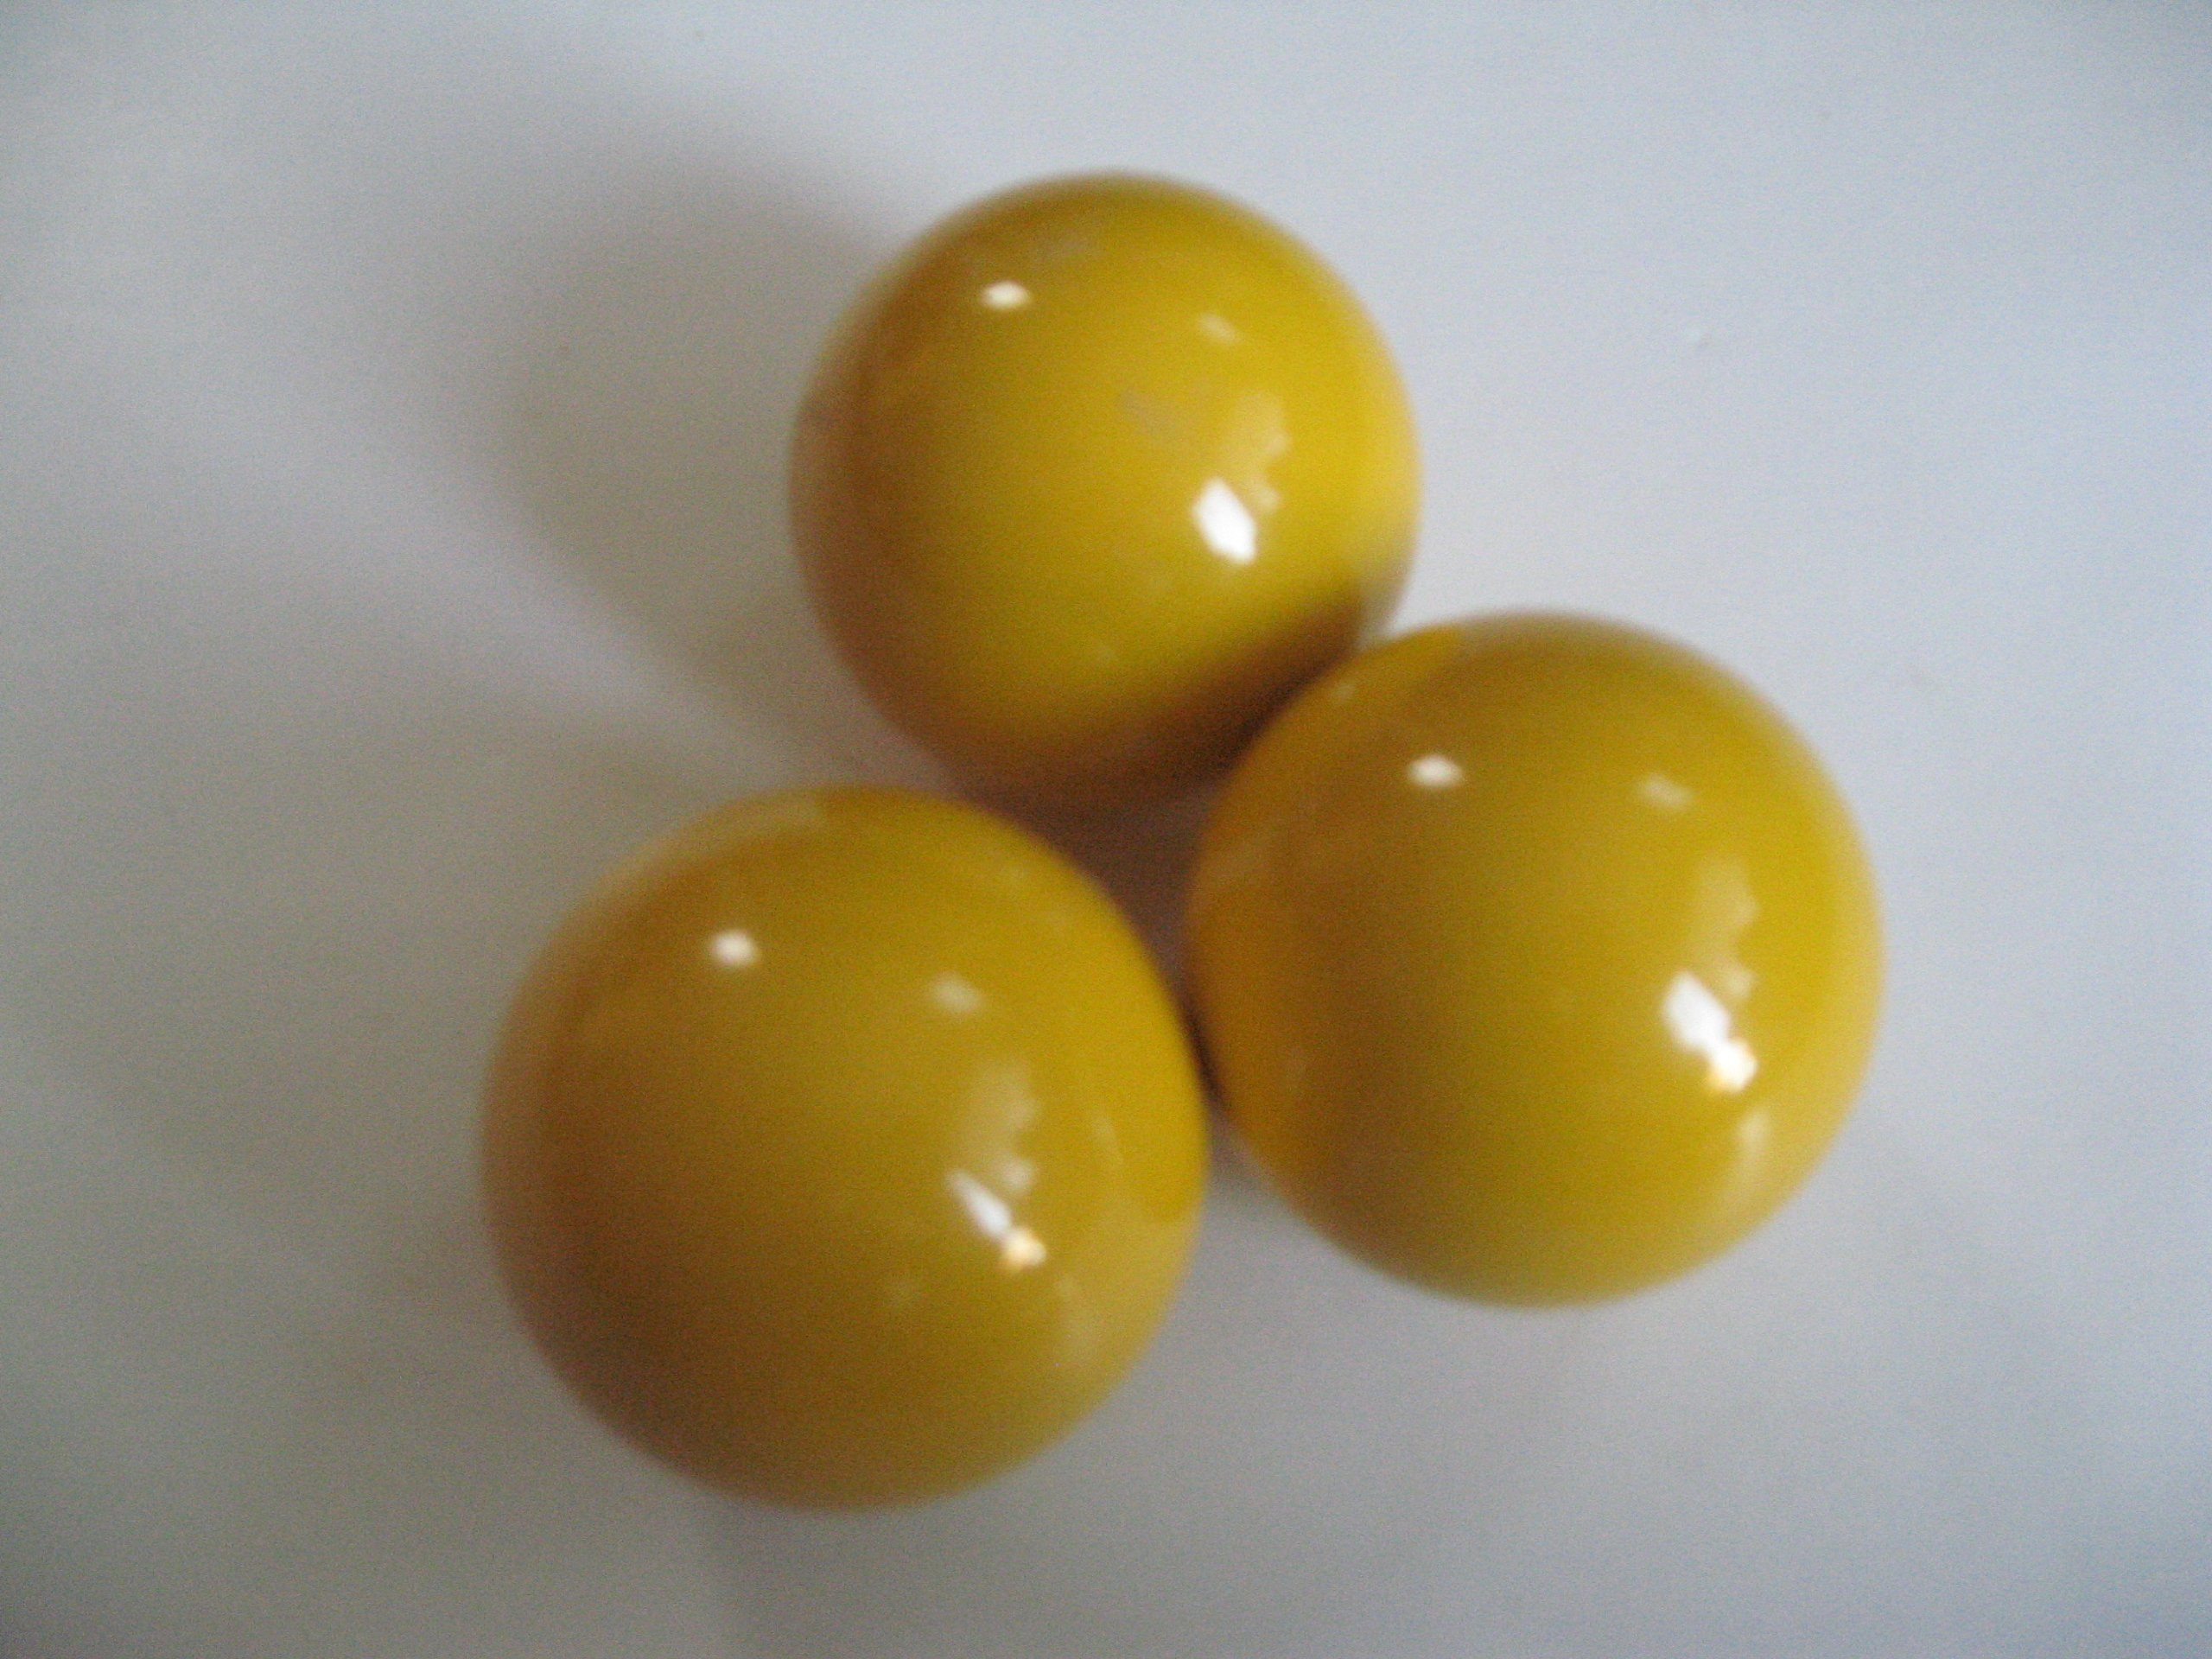 EPCO Bocce Yellow Pallinos - 3 Pack by Epco